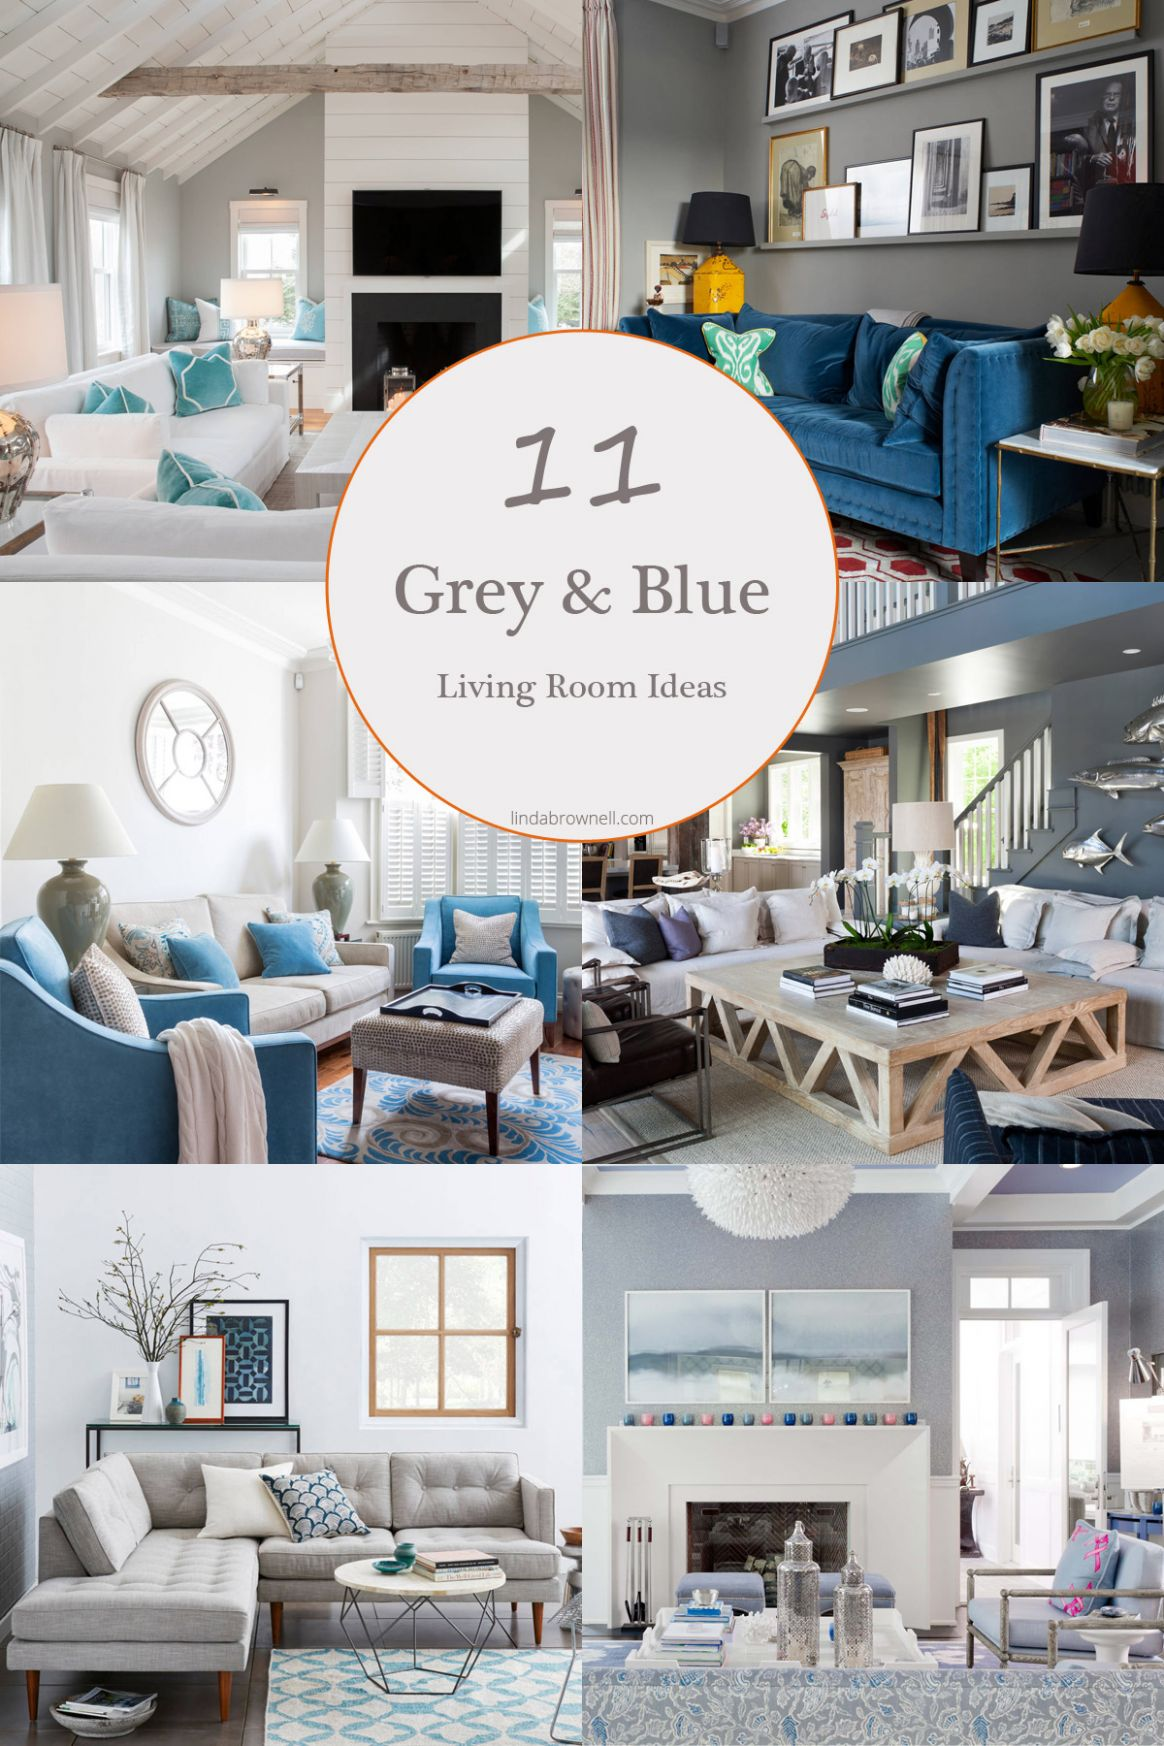 9 Most Attractive Grey and Blue Living Room Ideas That You Will ..